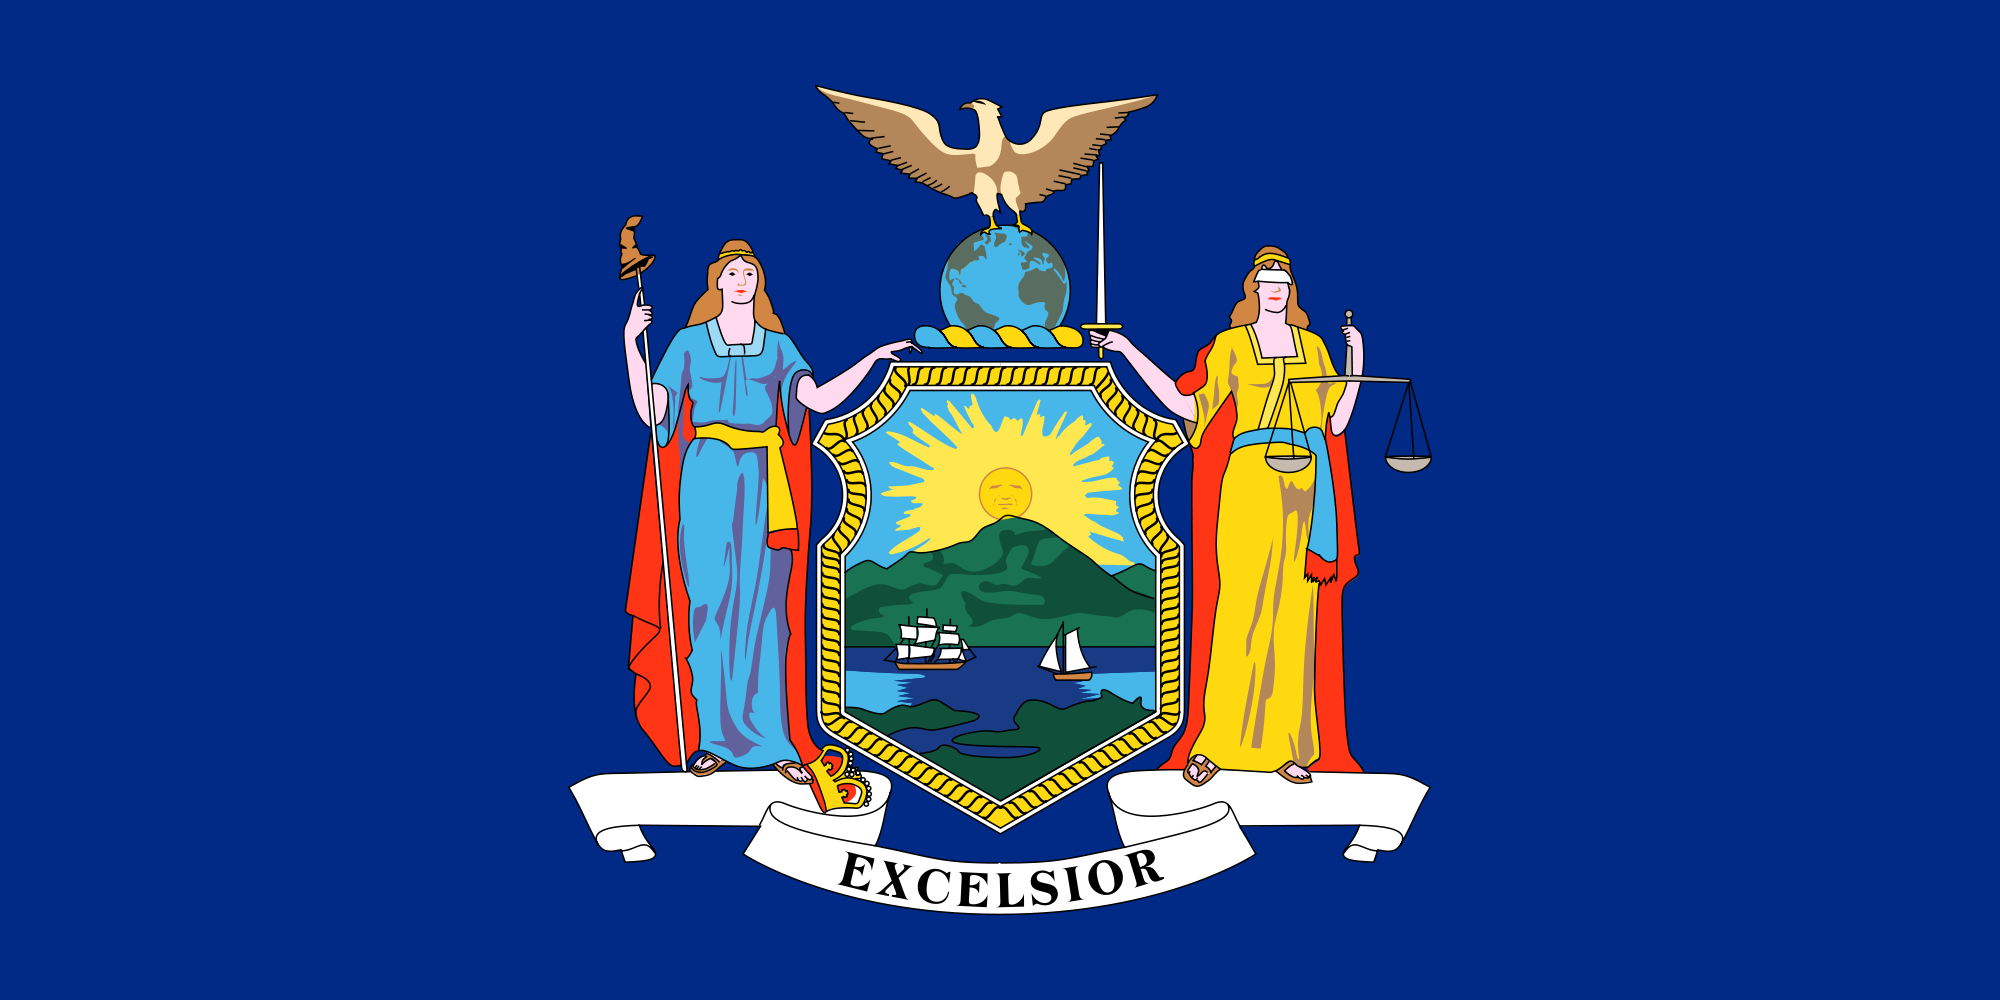 New York flag (linked to NY government website)